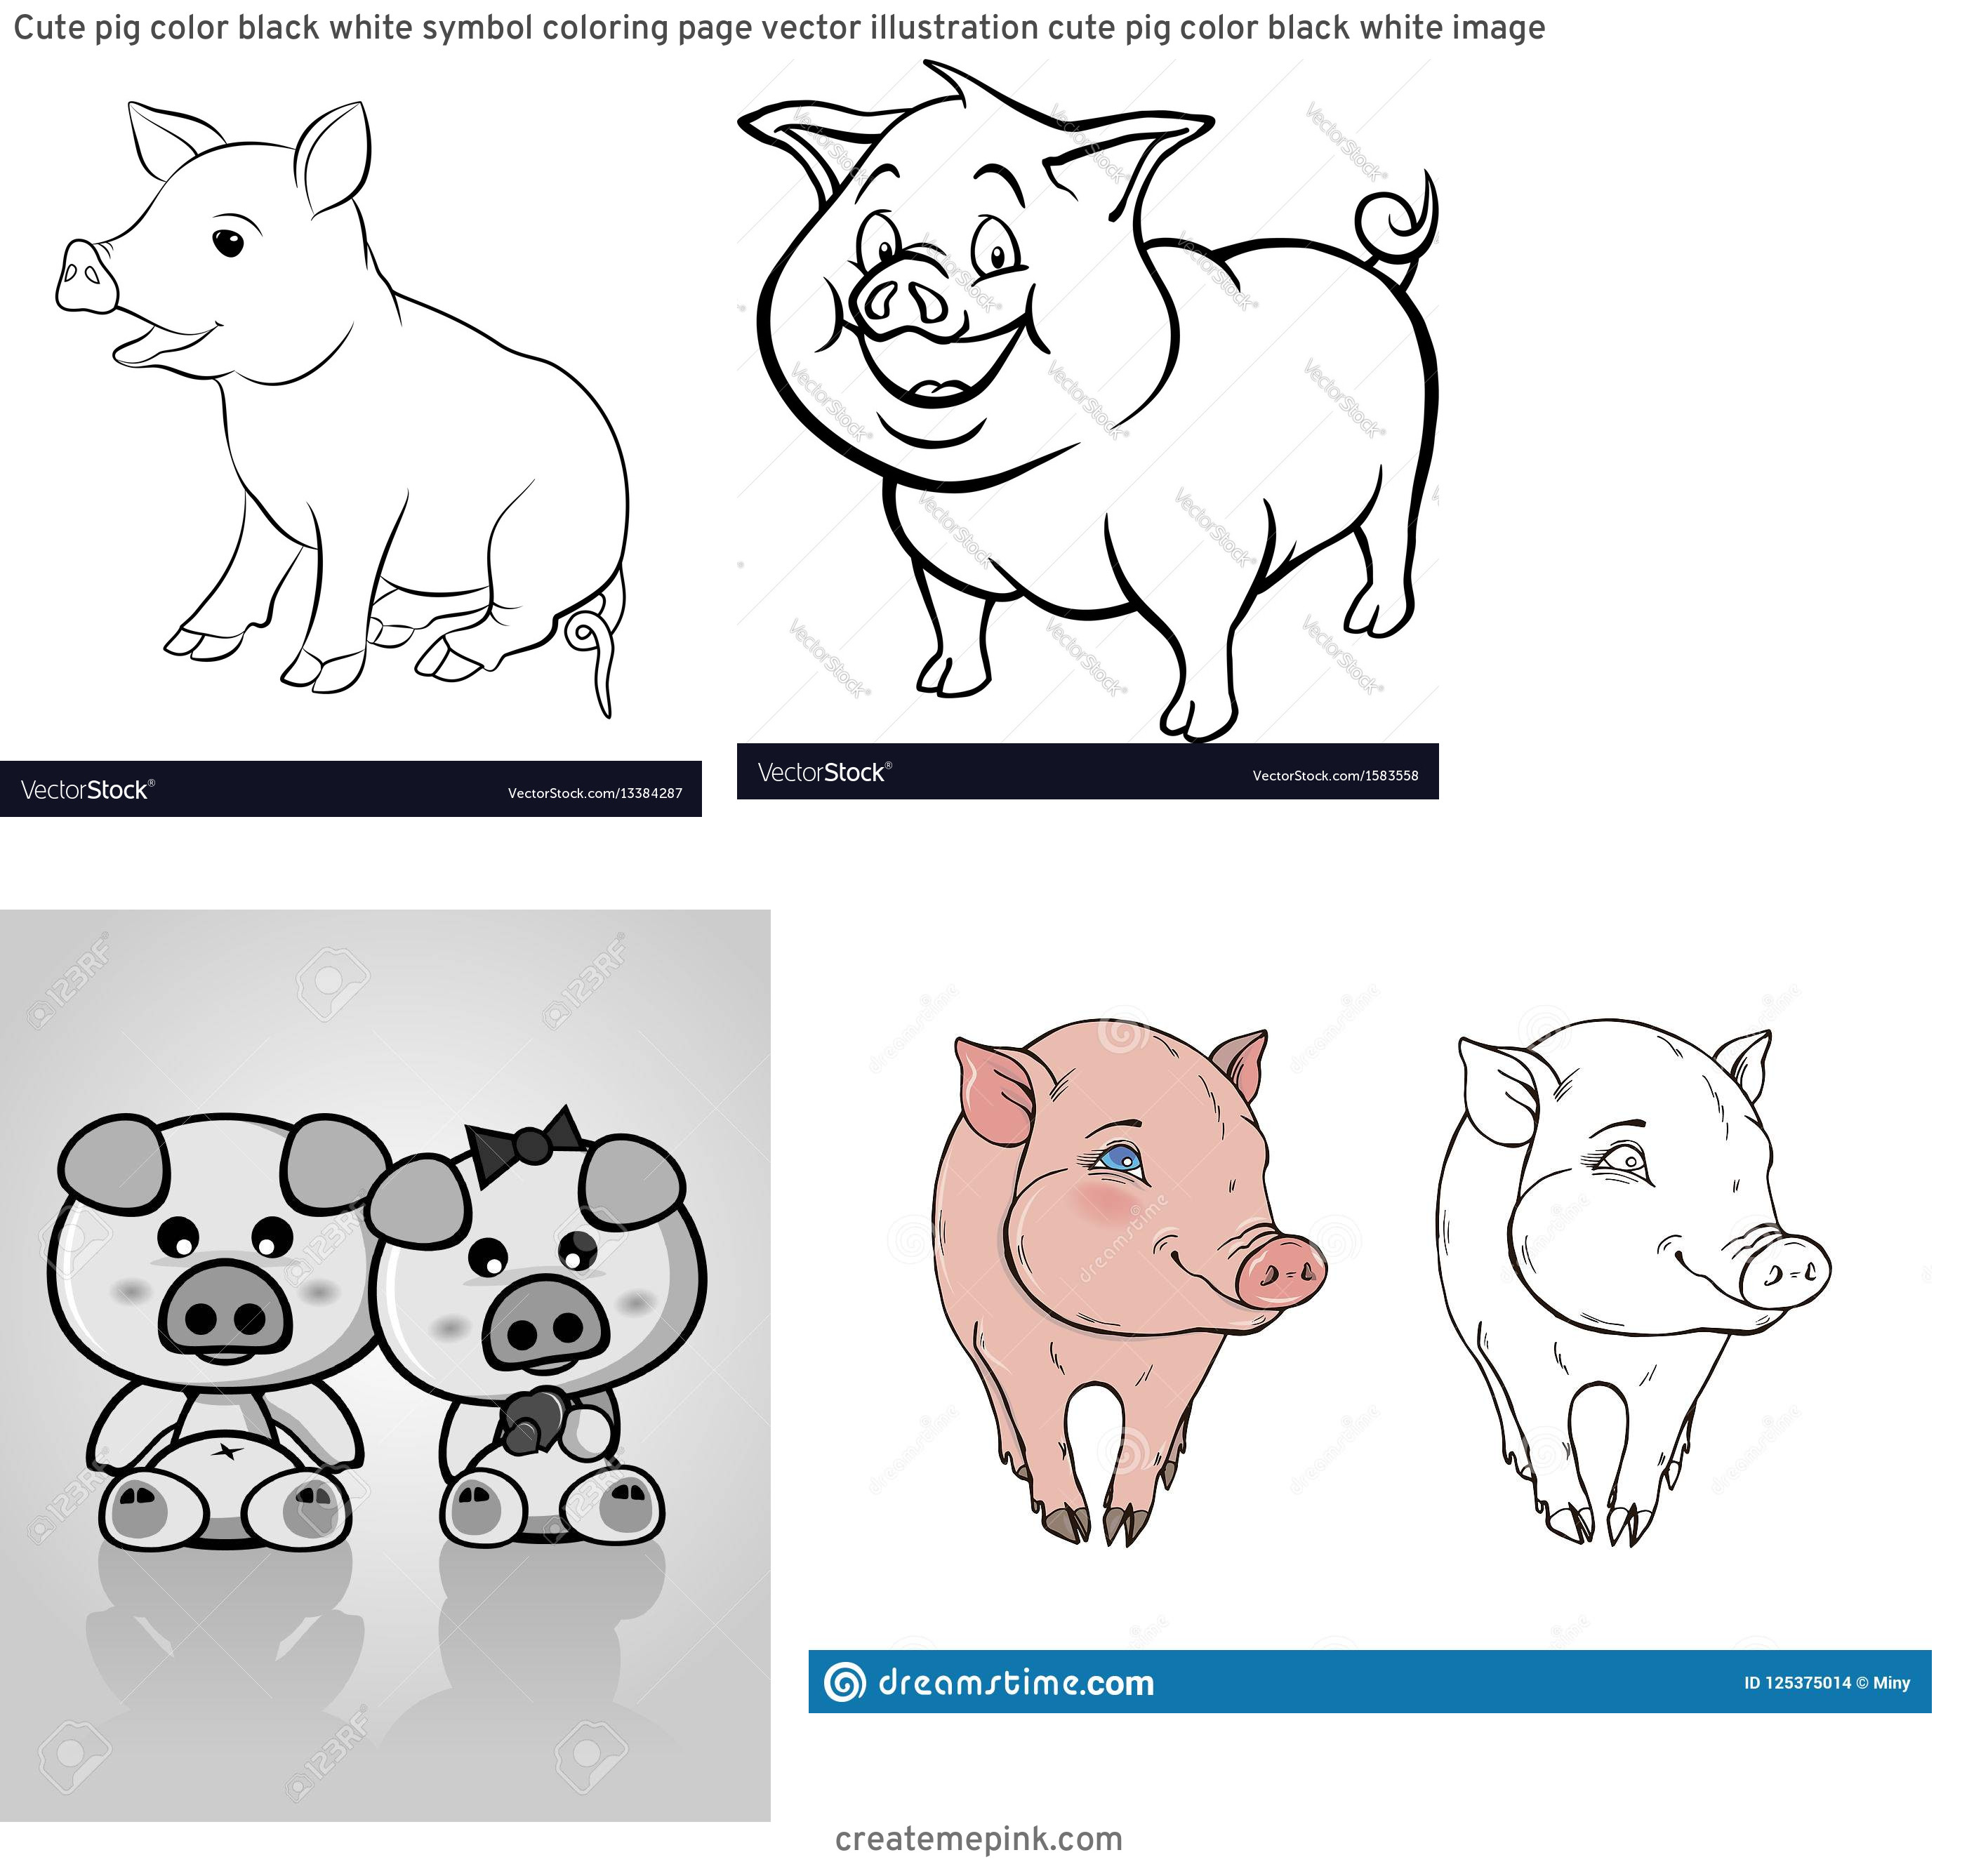 Cute Pig Vector Black And White: Cute Pig Color Black White Symbol Coloring Page Vector Illustration Cute Pig Color Black White Image